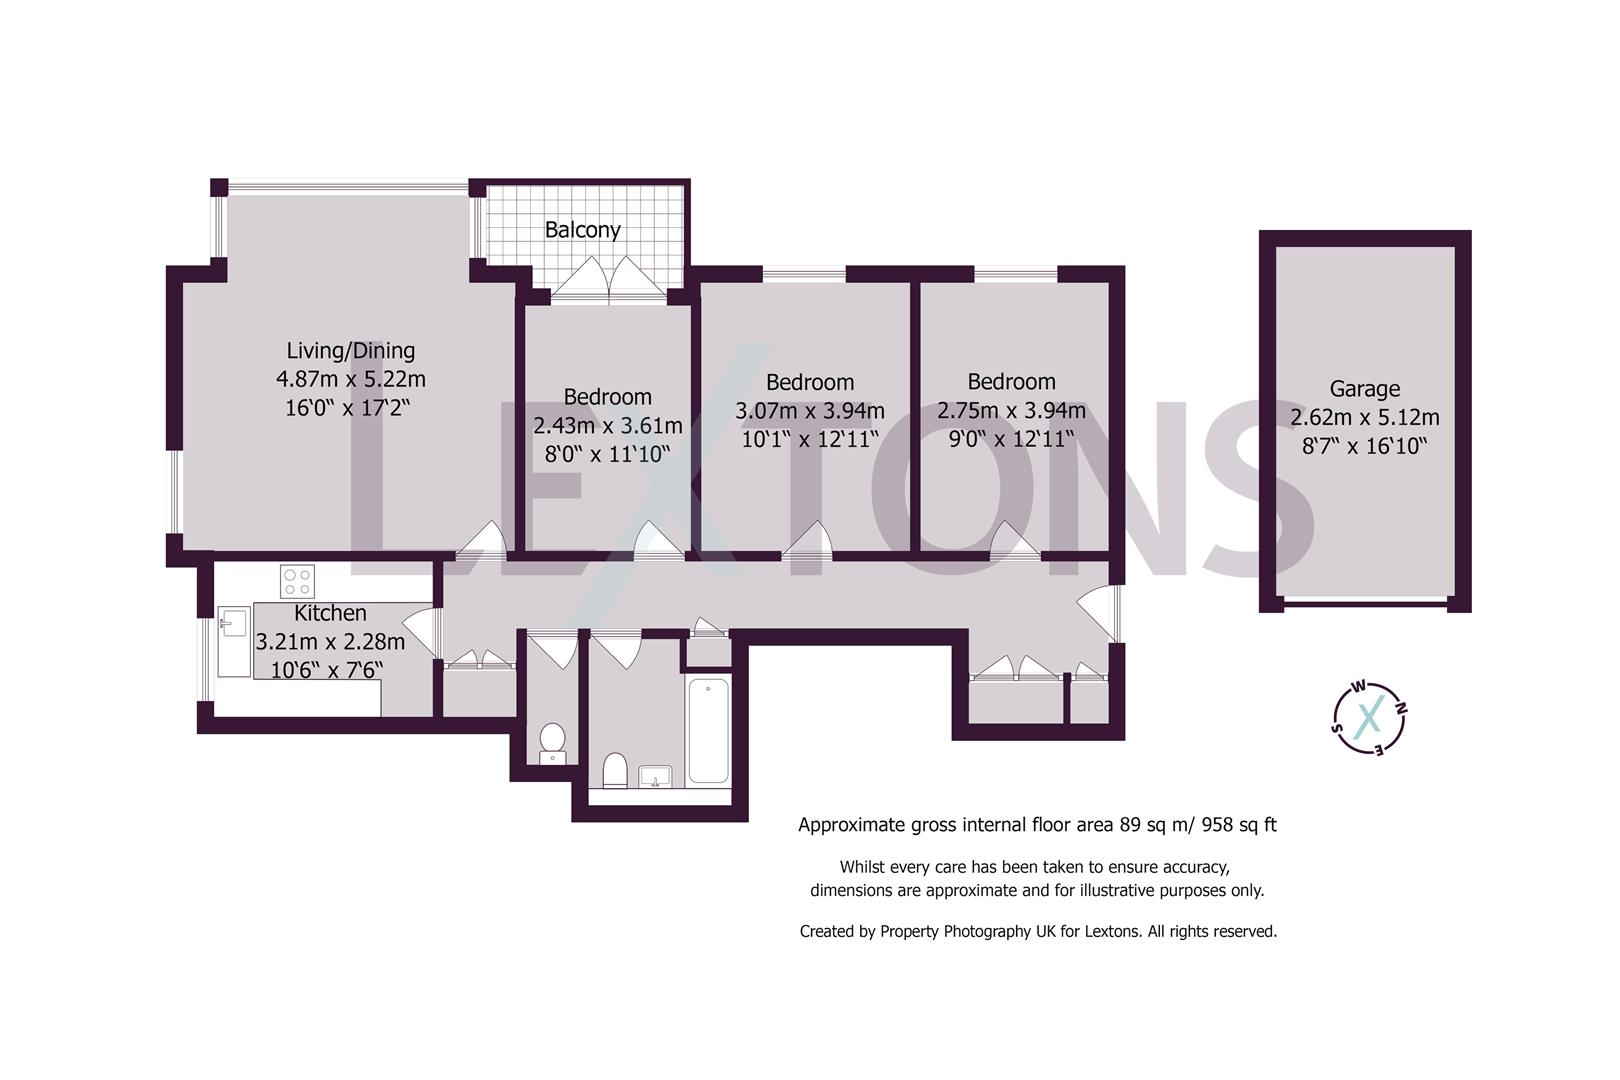 Floorplans For York Avenue, Hove